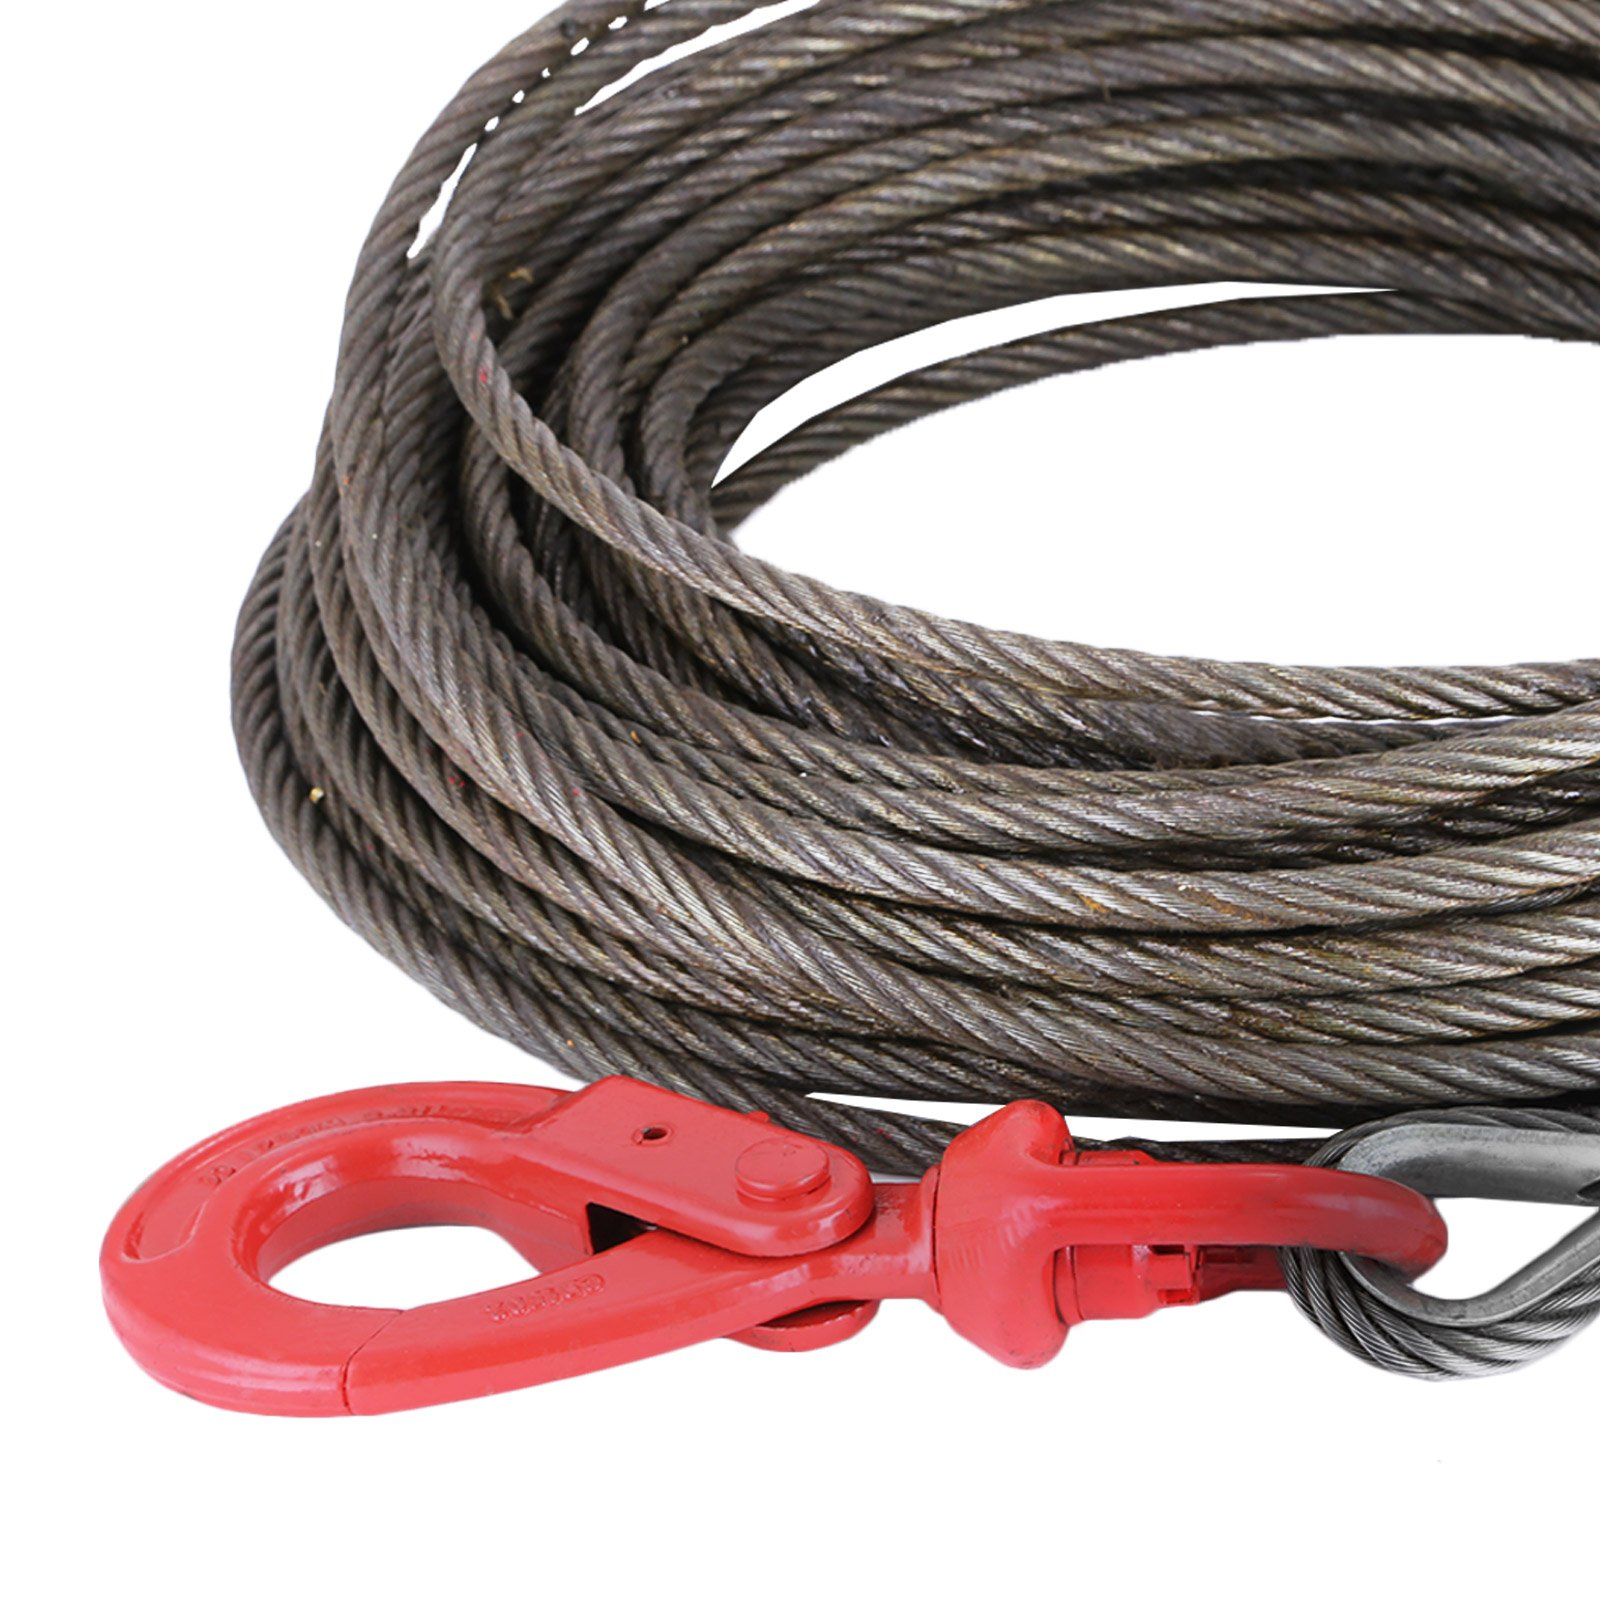 """LOVSHARE 3/8"""" 75 FT Wire Rope 2T Steel Core Winch Cable with Self Locking Swivel Hook Steel Cable for Tow Truck Flatbed (75 FT) by LOVSHARE (Image #9)"""